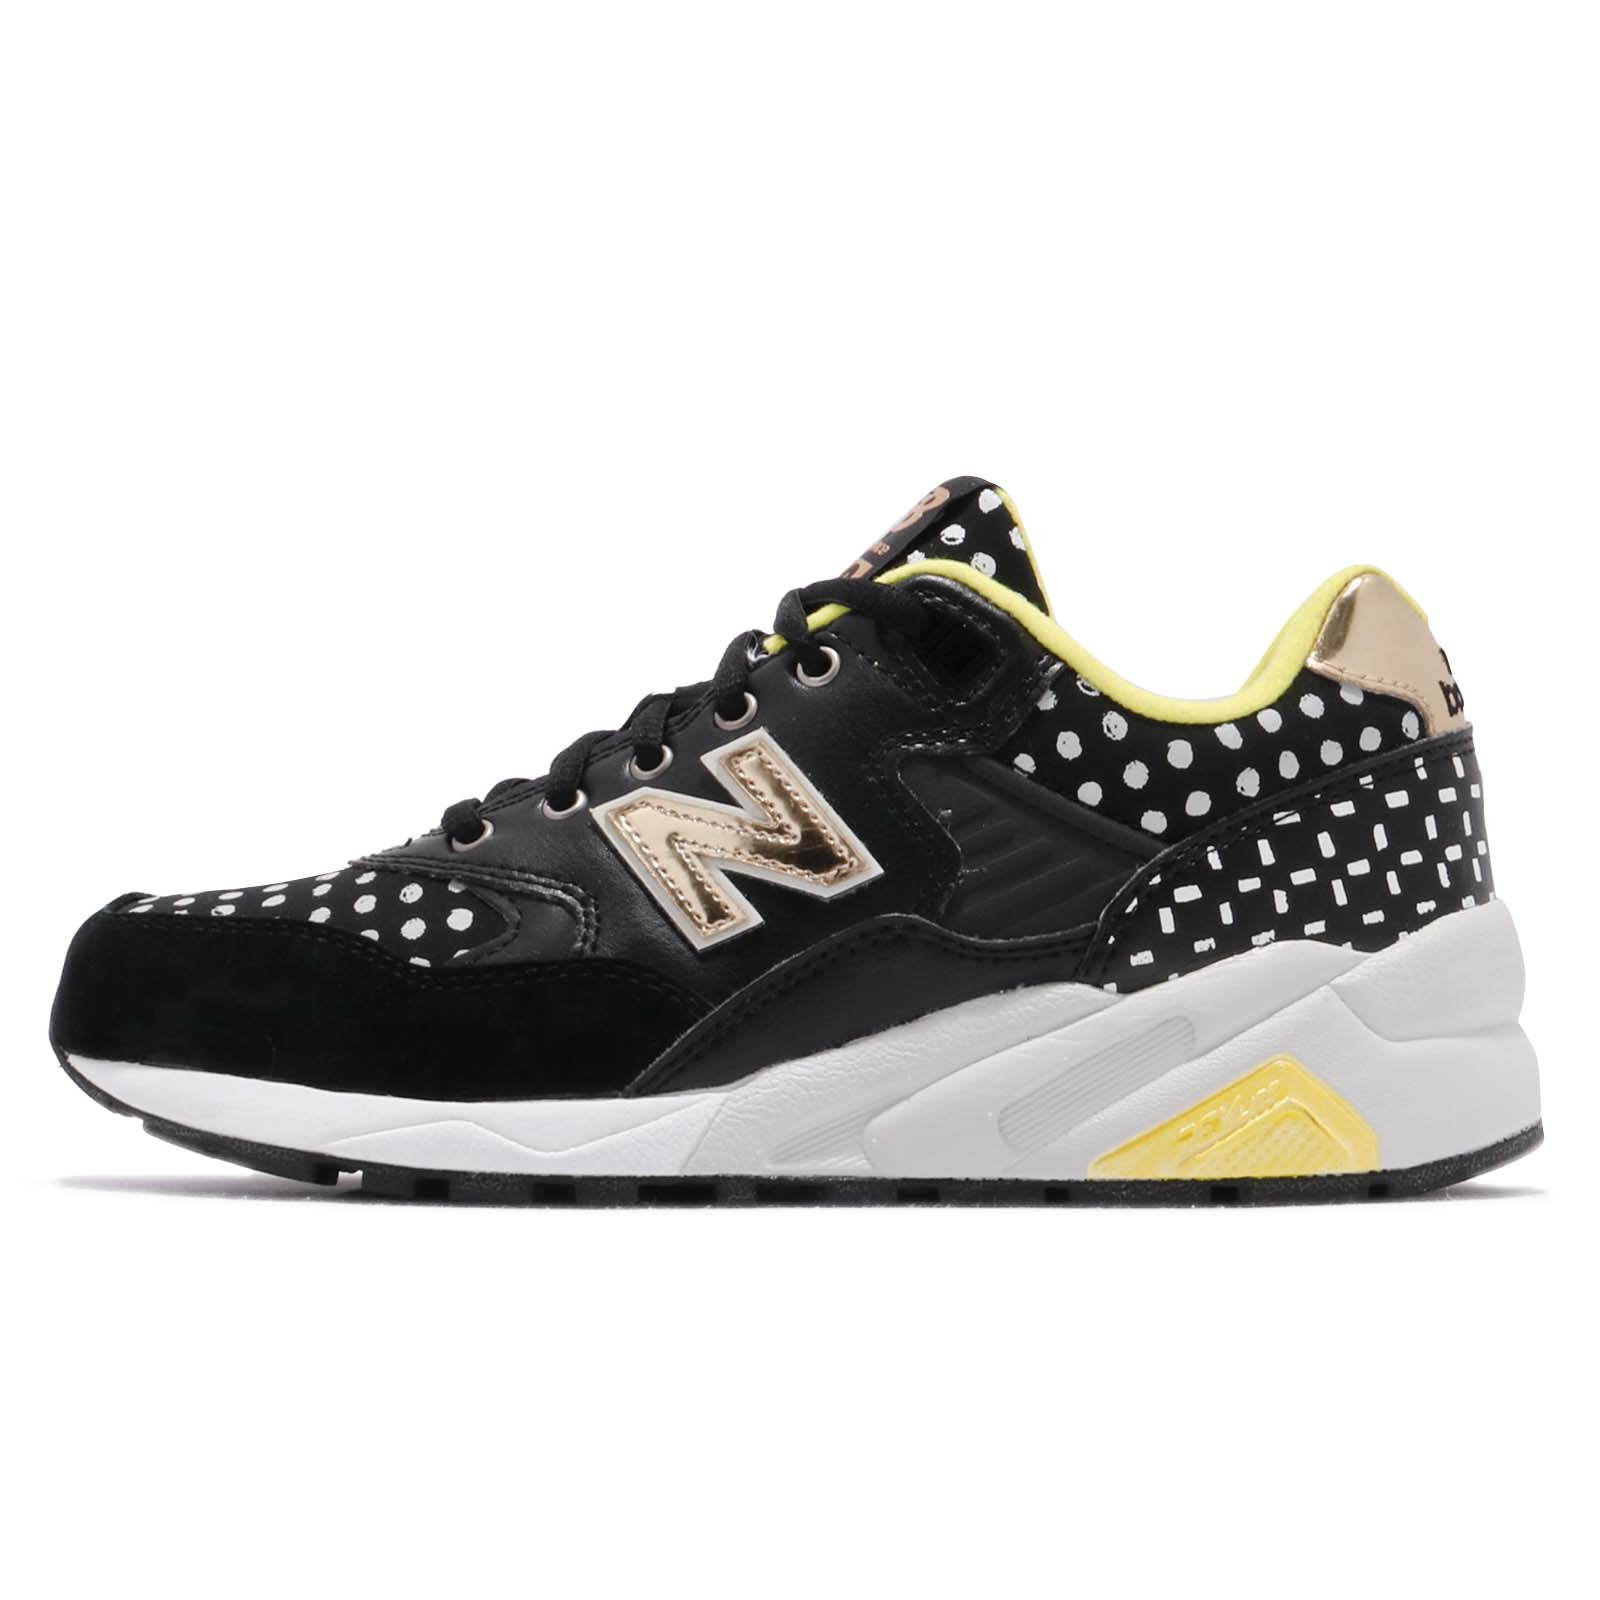 the best attitude cdc6c b9fa7 womens retro new balance sneakers style